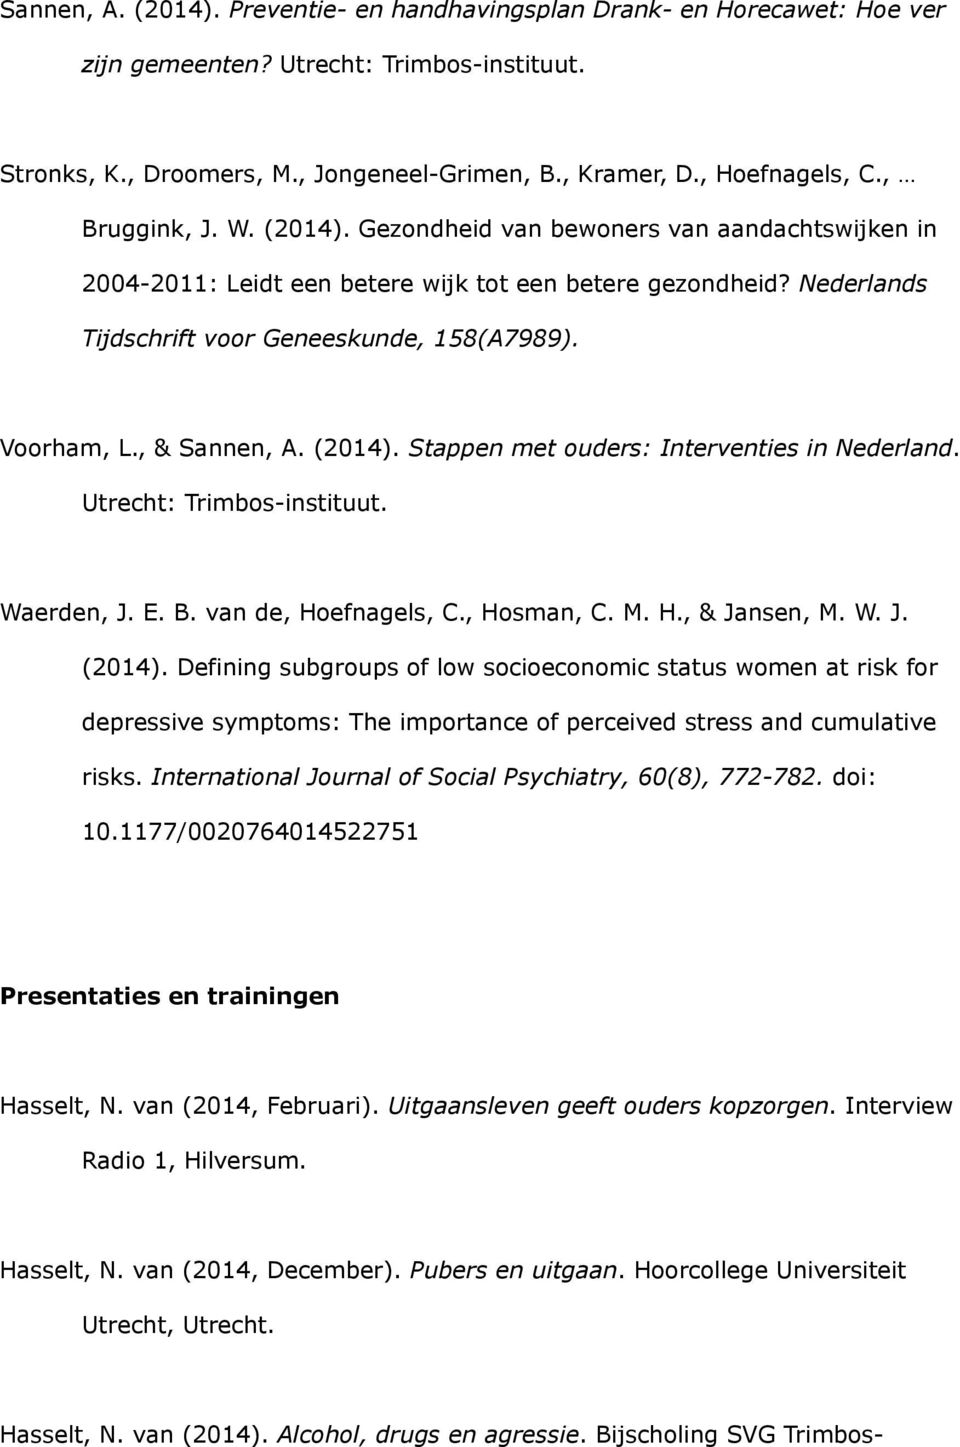 , & Sannen, A. (2014). Stappen met ouders: Interventies in Nederland. Utrecht: Trimbos-instituut. Waerden, J. E. B. van de, Hoefnagels, C., Hosman, C. M. H., & Jansen, M. W. J. (2014). Defining subgroups of low socioeconomic status women at risk for depressive symptoms: The importance of perceived stress and cumulative risks.